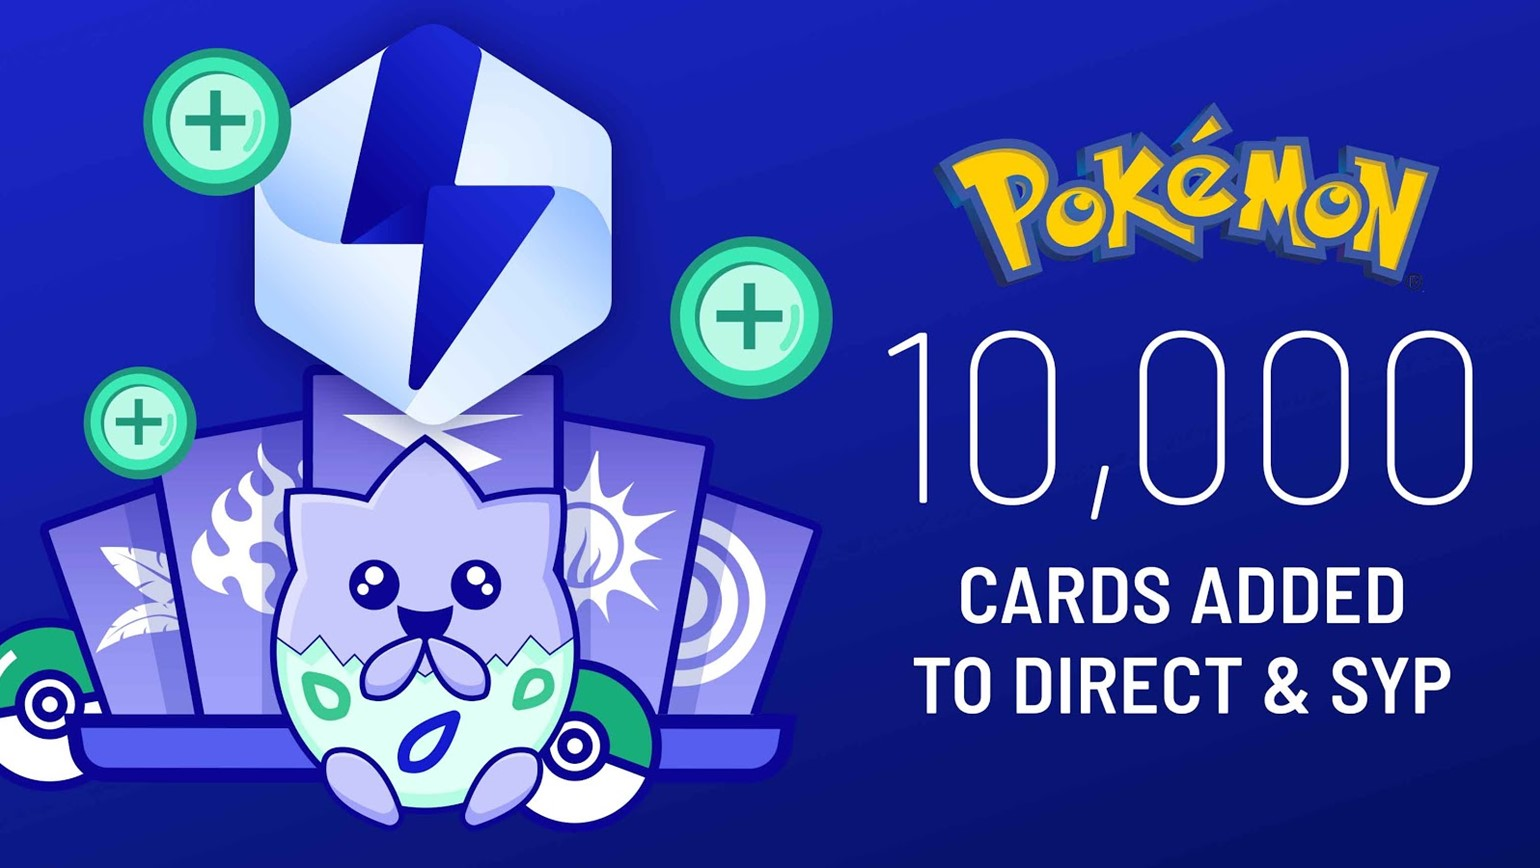 New Pokémon Legacy Sets, adding over 10,000 cards to Direct and Store Your Products